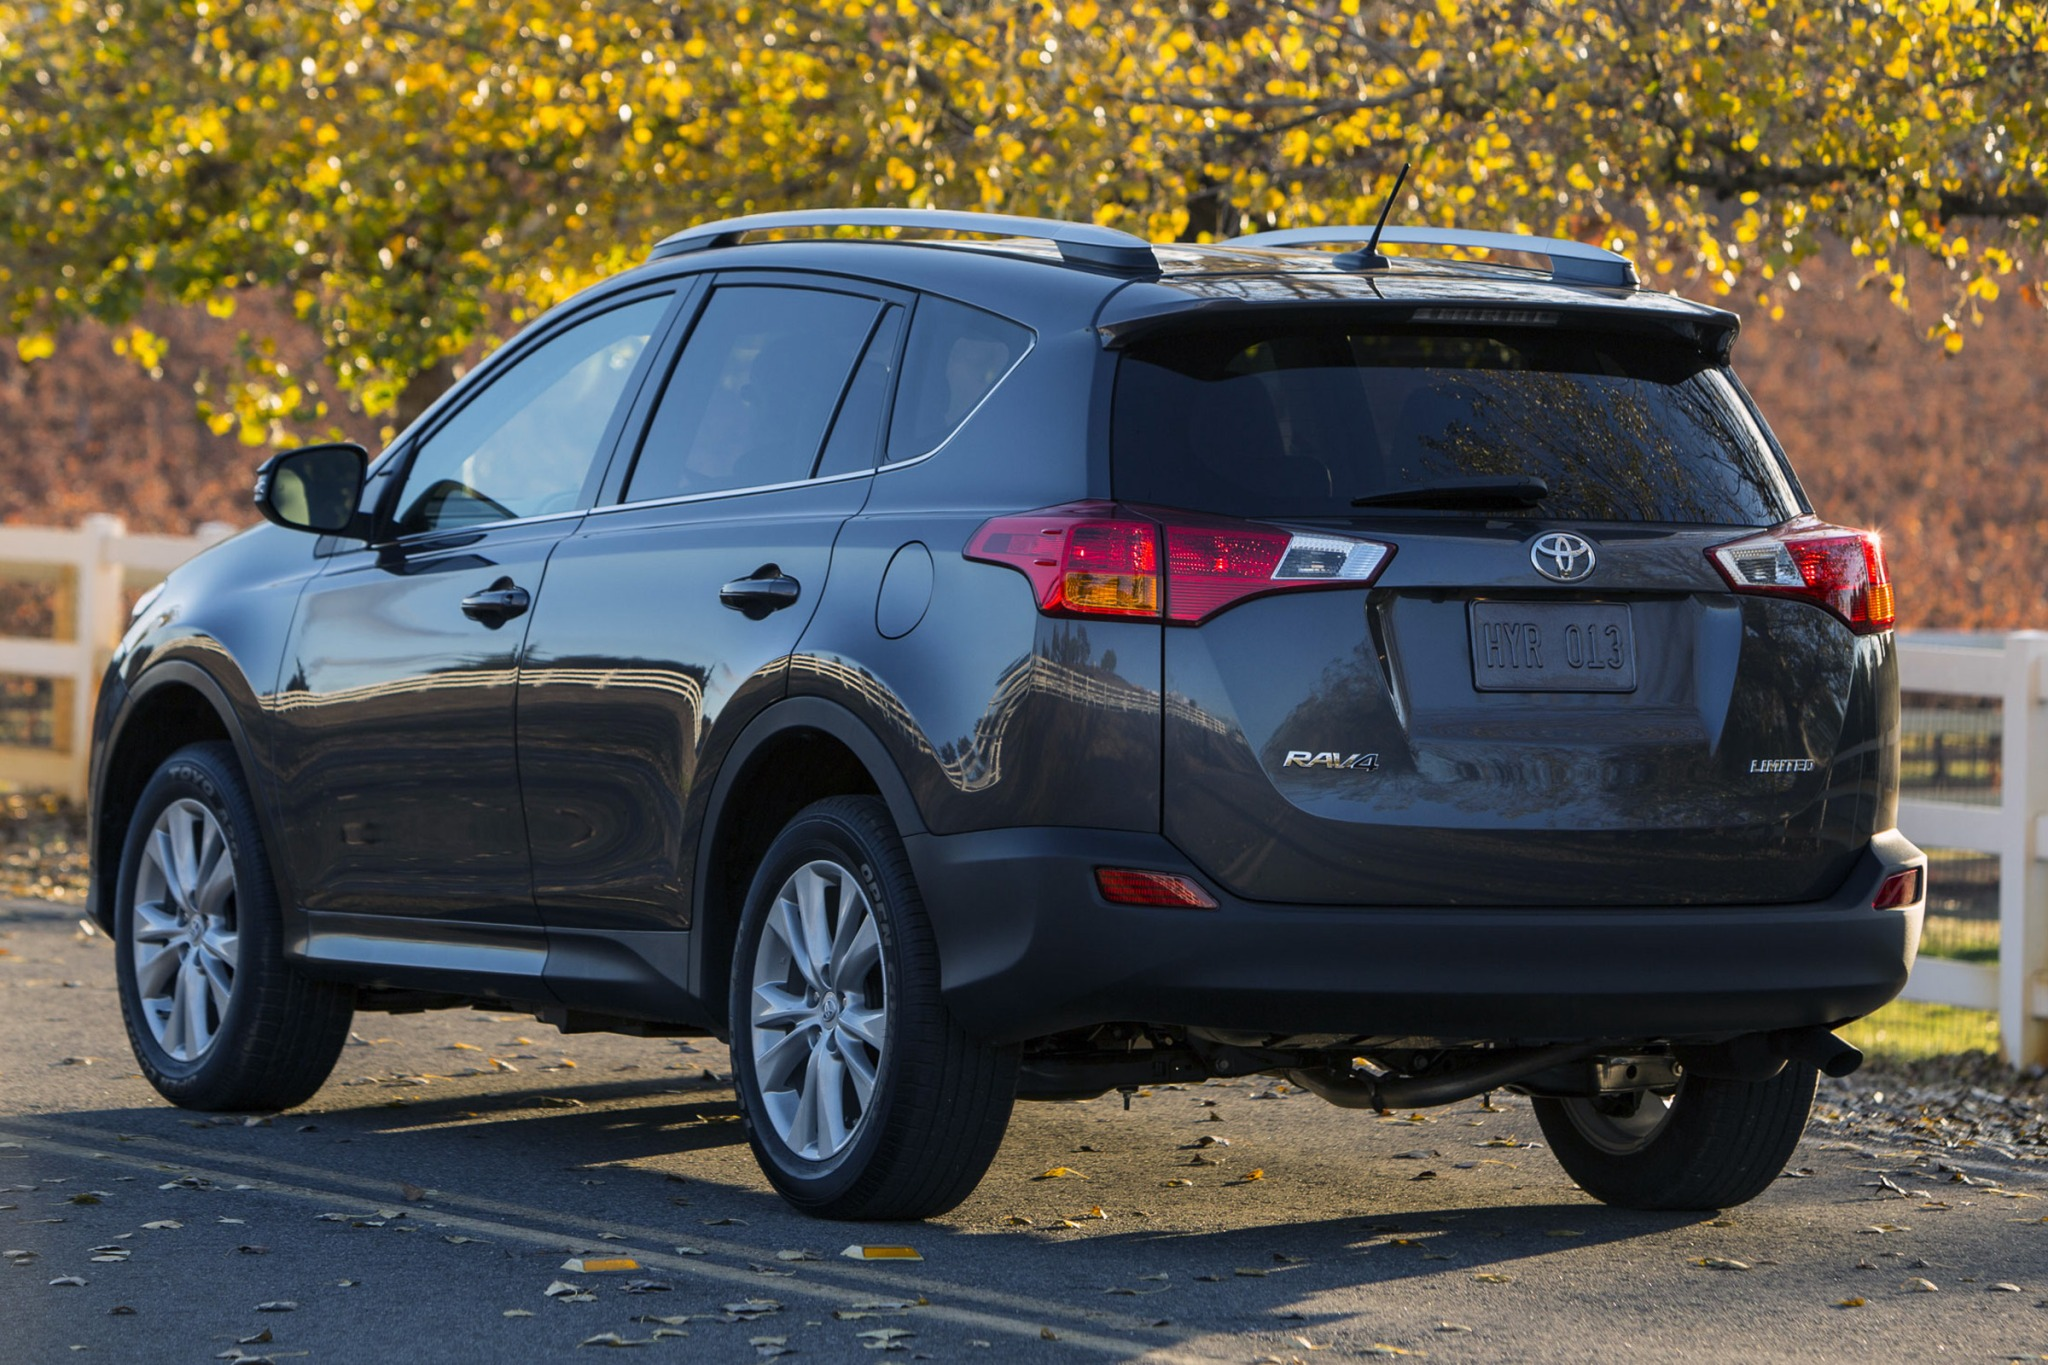 2015 Toyota Rav4 Le Fwd Vin Number Search